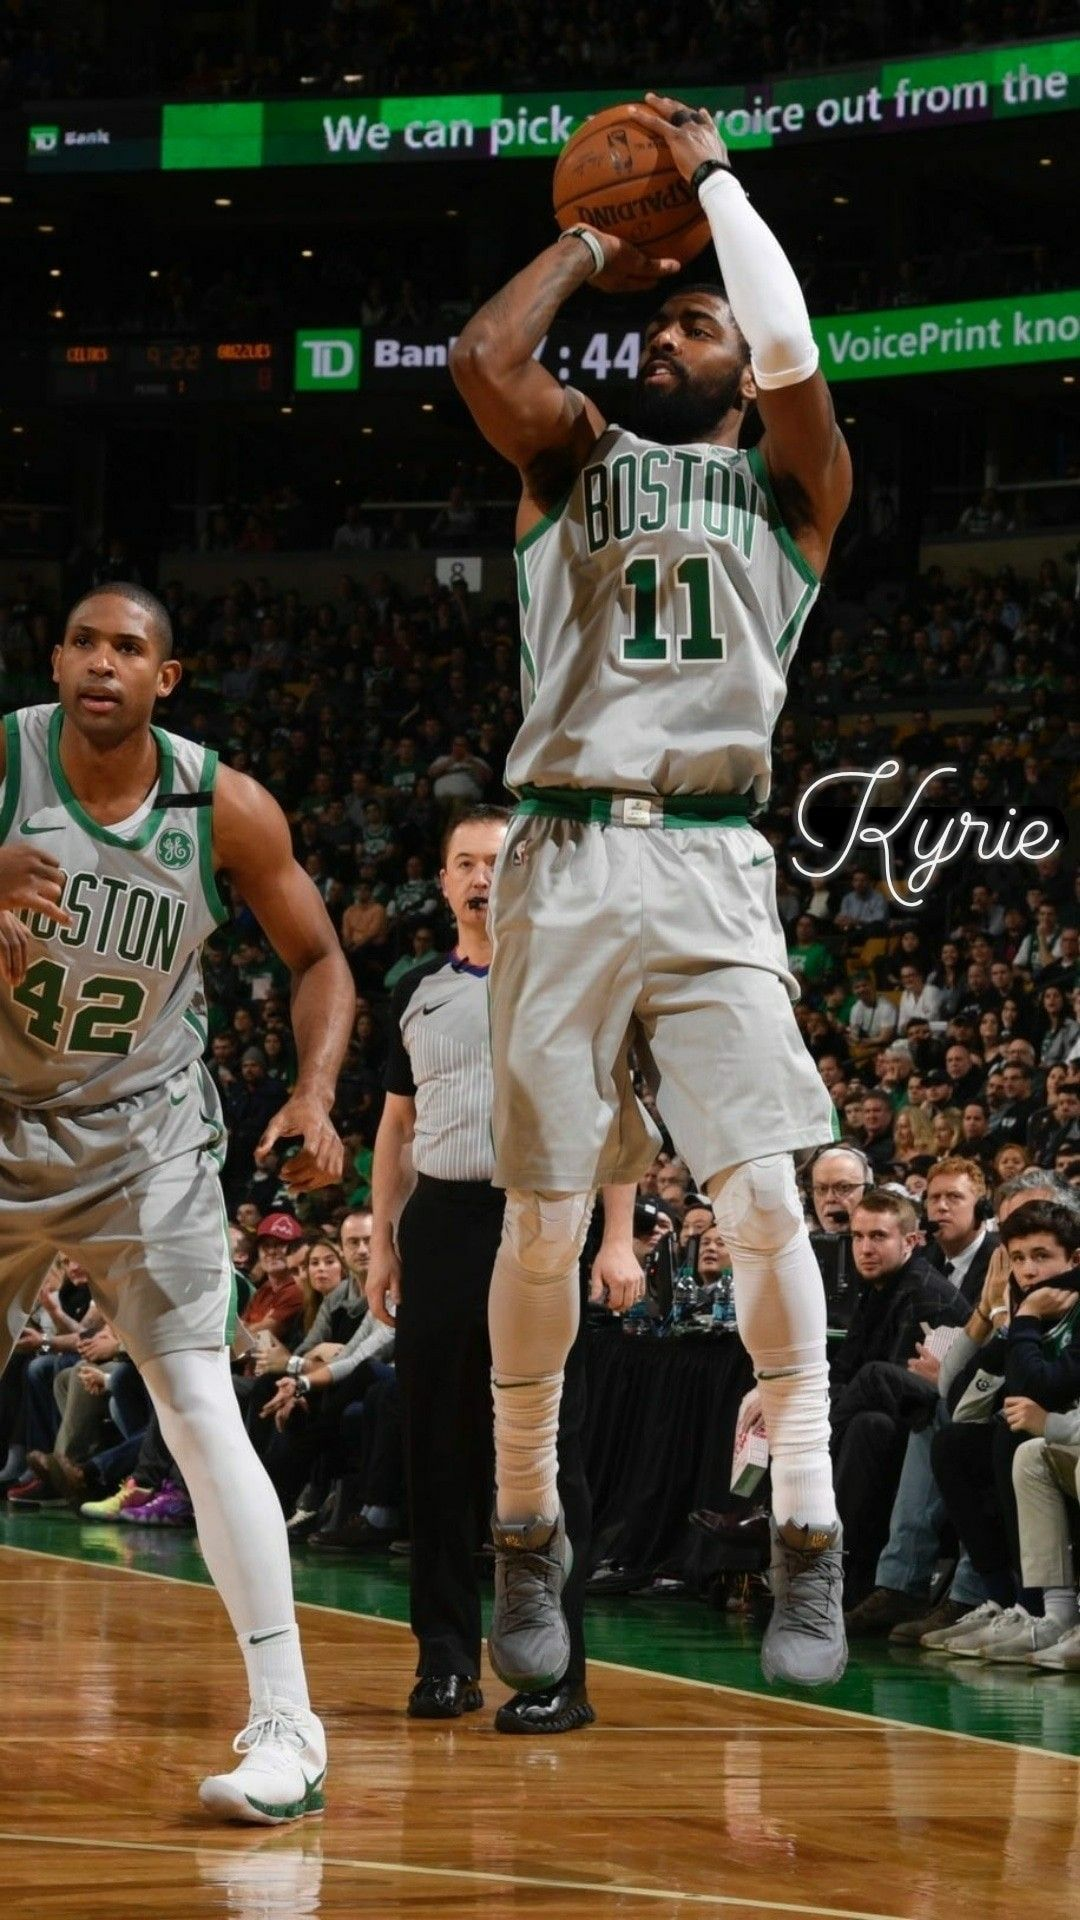 Kyrie Irving Nets Wallpaper Download In 2020 Kyrie Irving Basketball Quotes Girls Kyrie